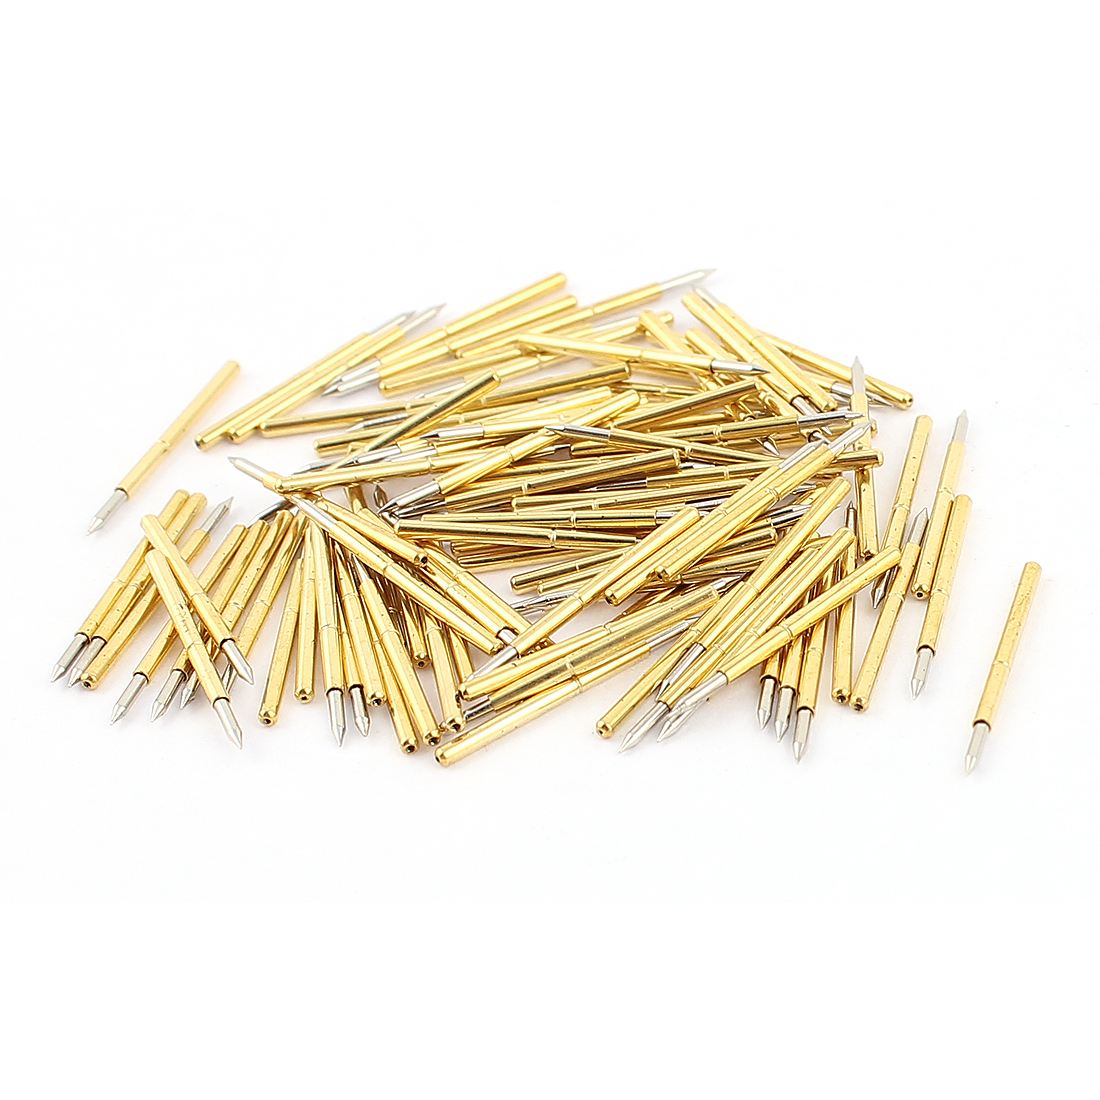 P75-B 0.74mm Dia 16mm Length Point Tip Metal Spring Test Probe Pin 100pcs